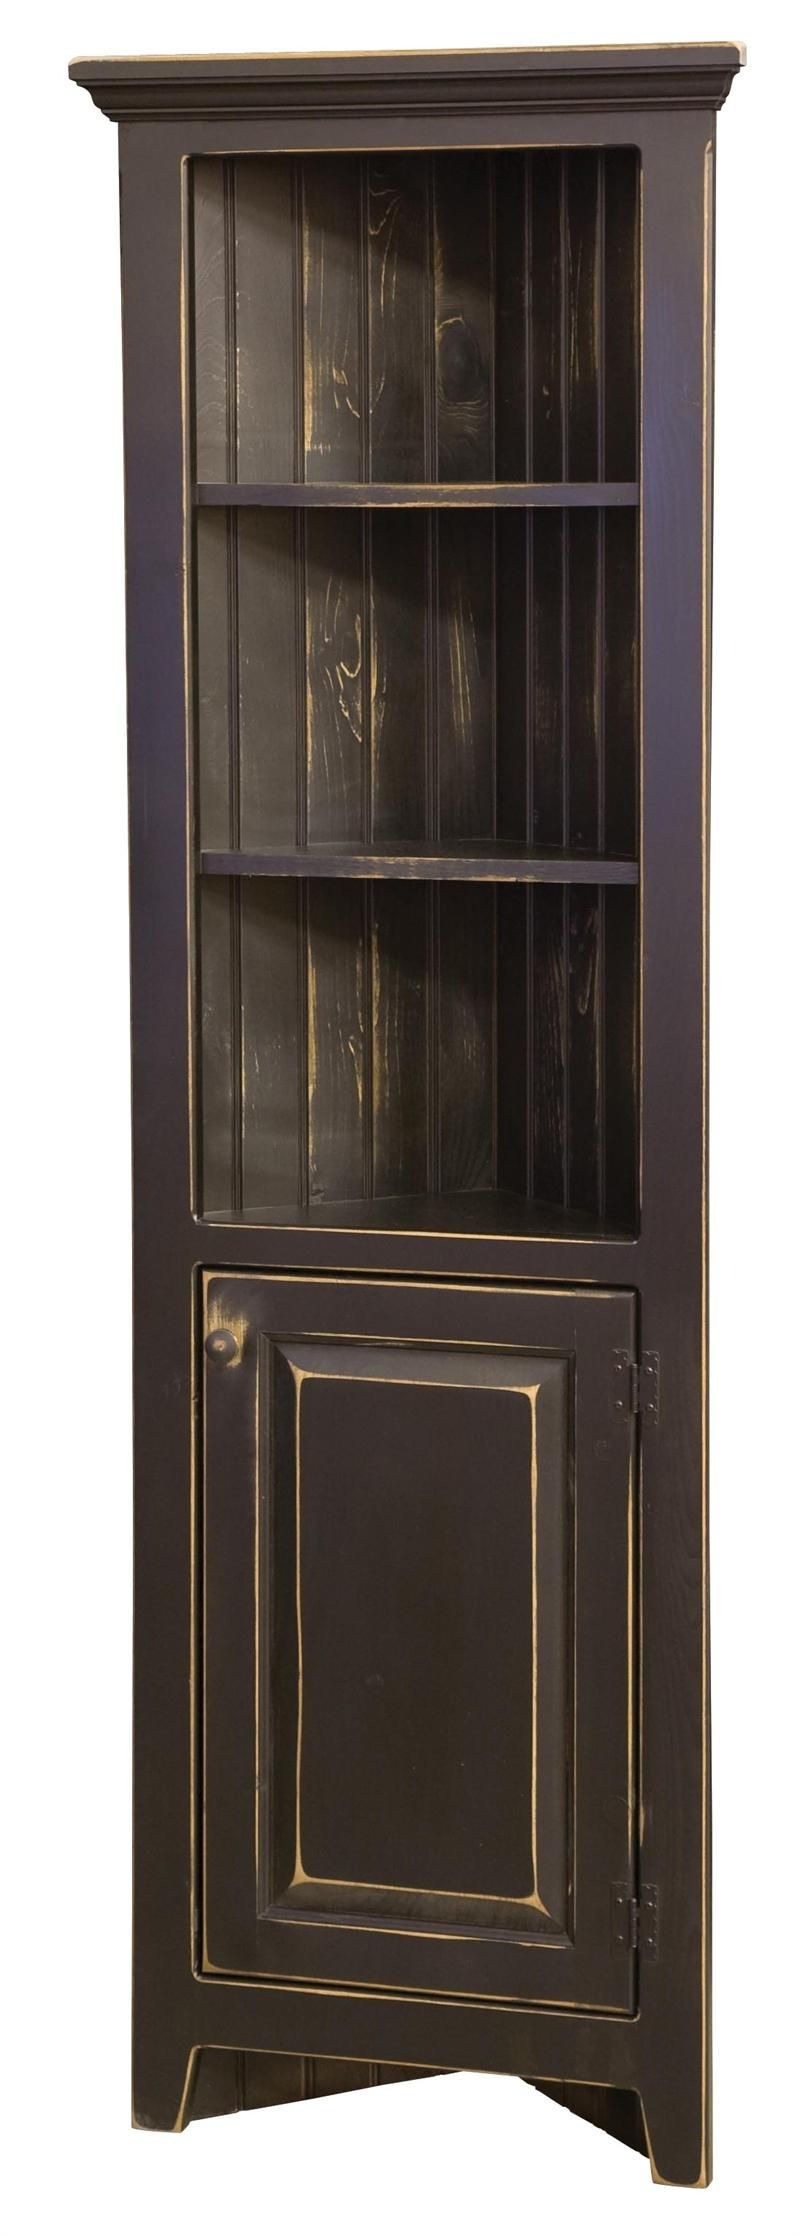 black corner cabinet | ... Furniture Home > Dining Room > Curio ...